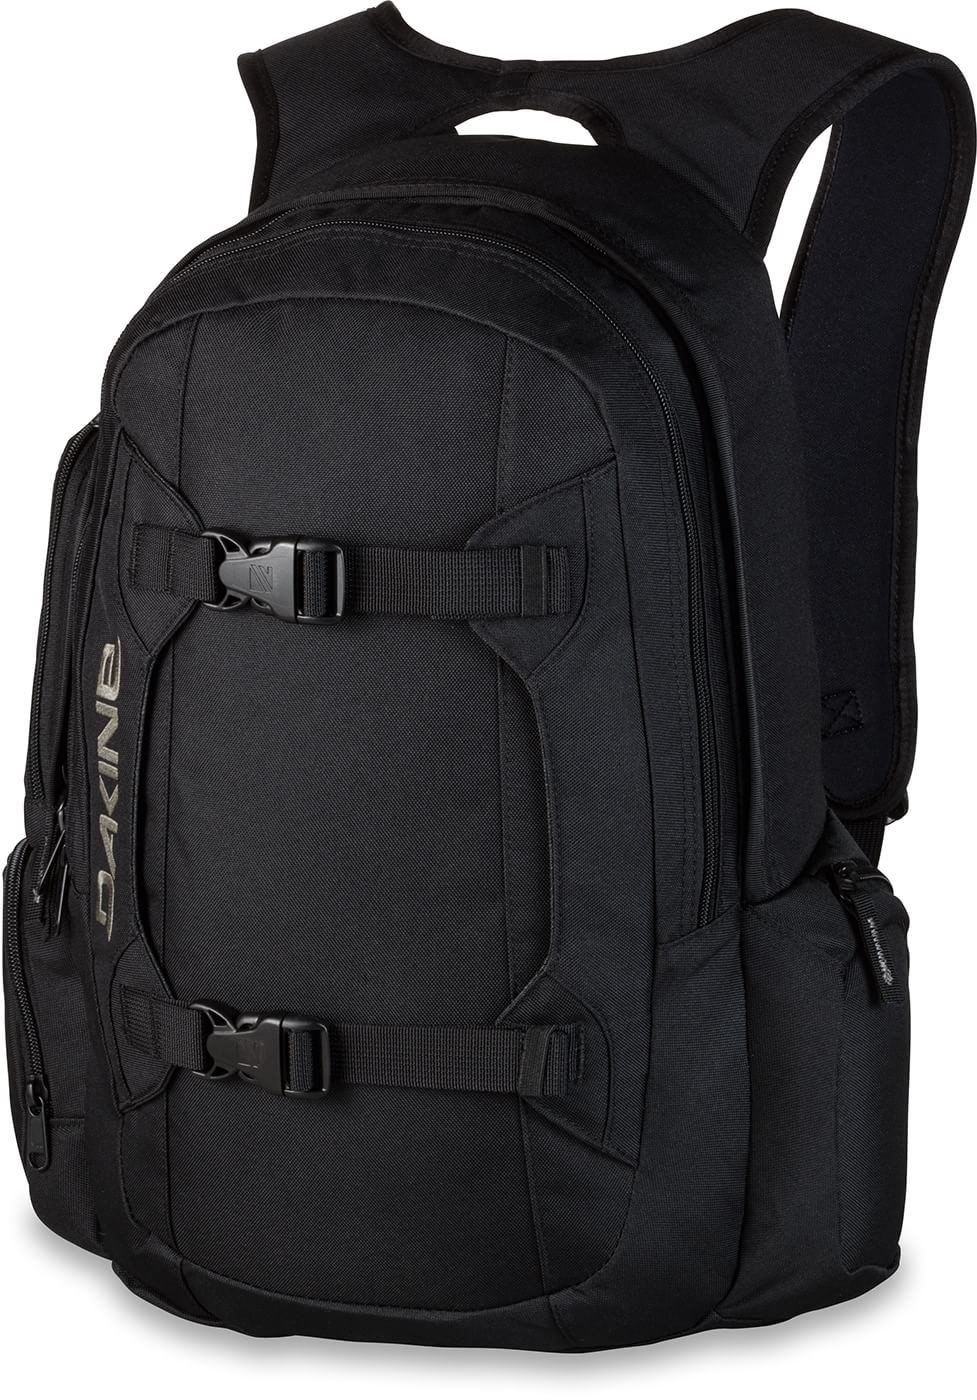 DAKINE Mission Backpack - black - Free Shipping